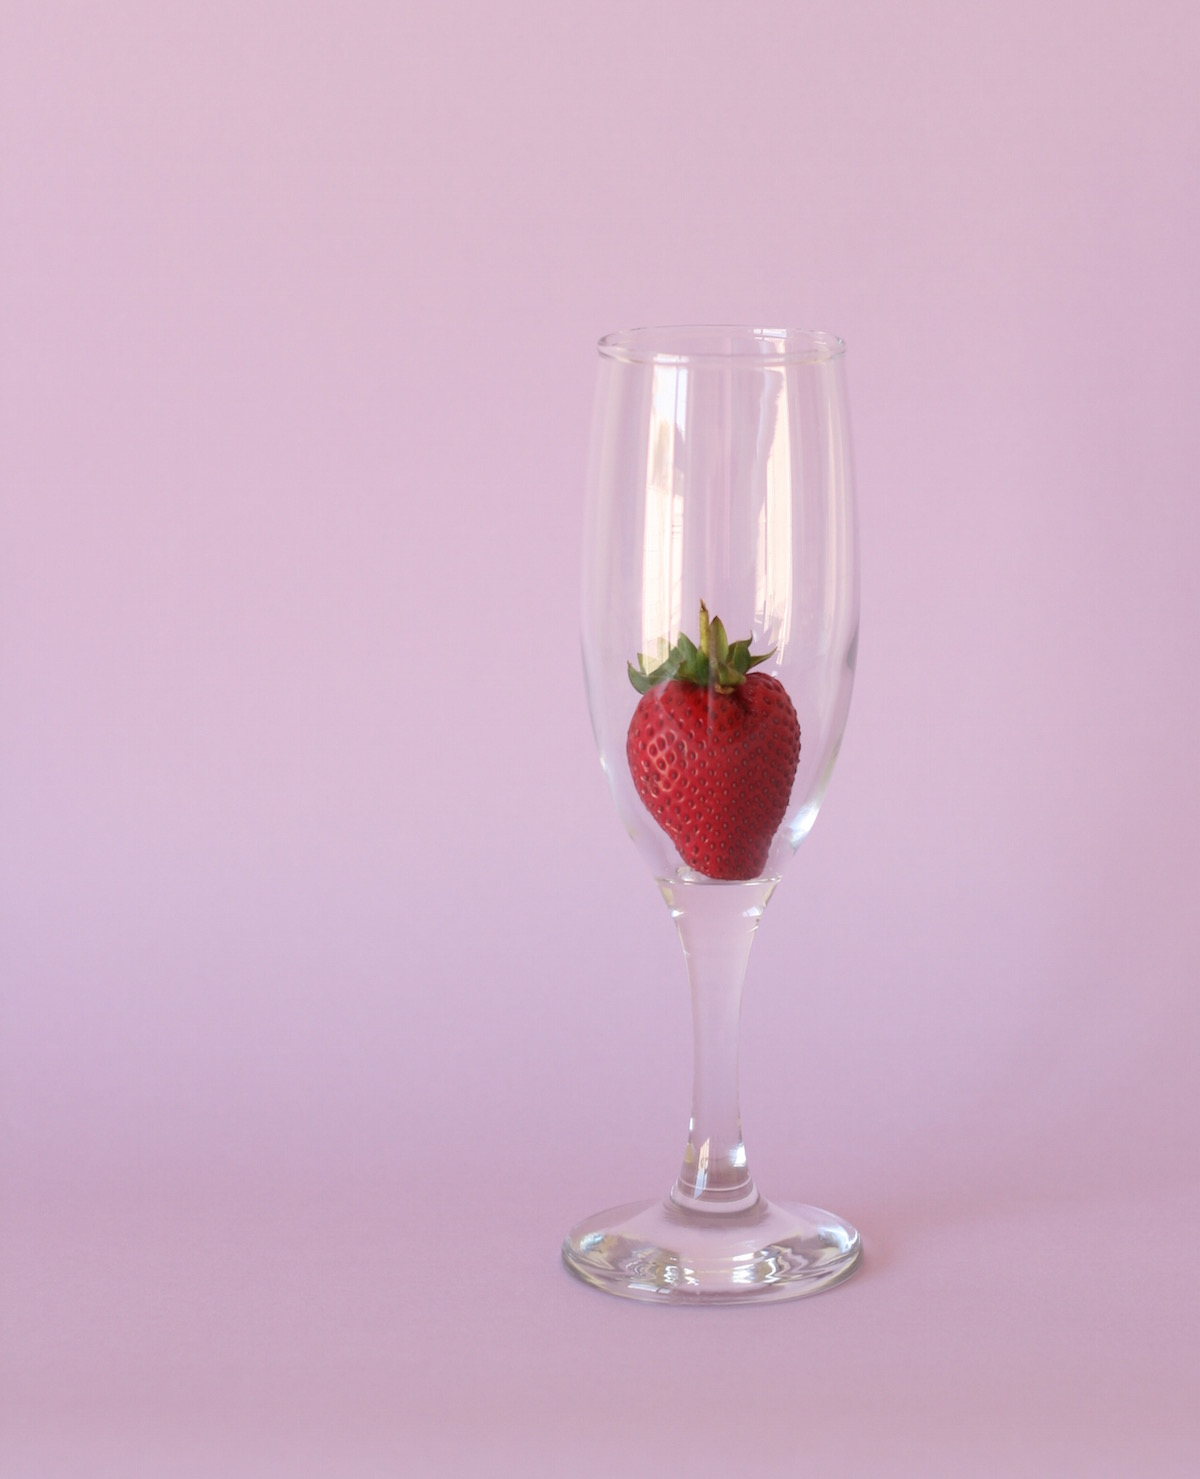 Strawberry in a champagne glass